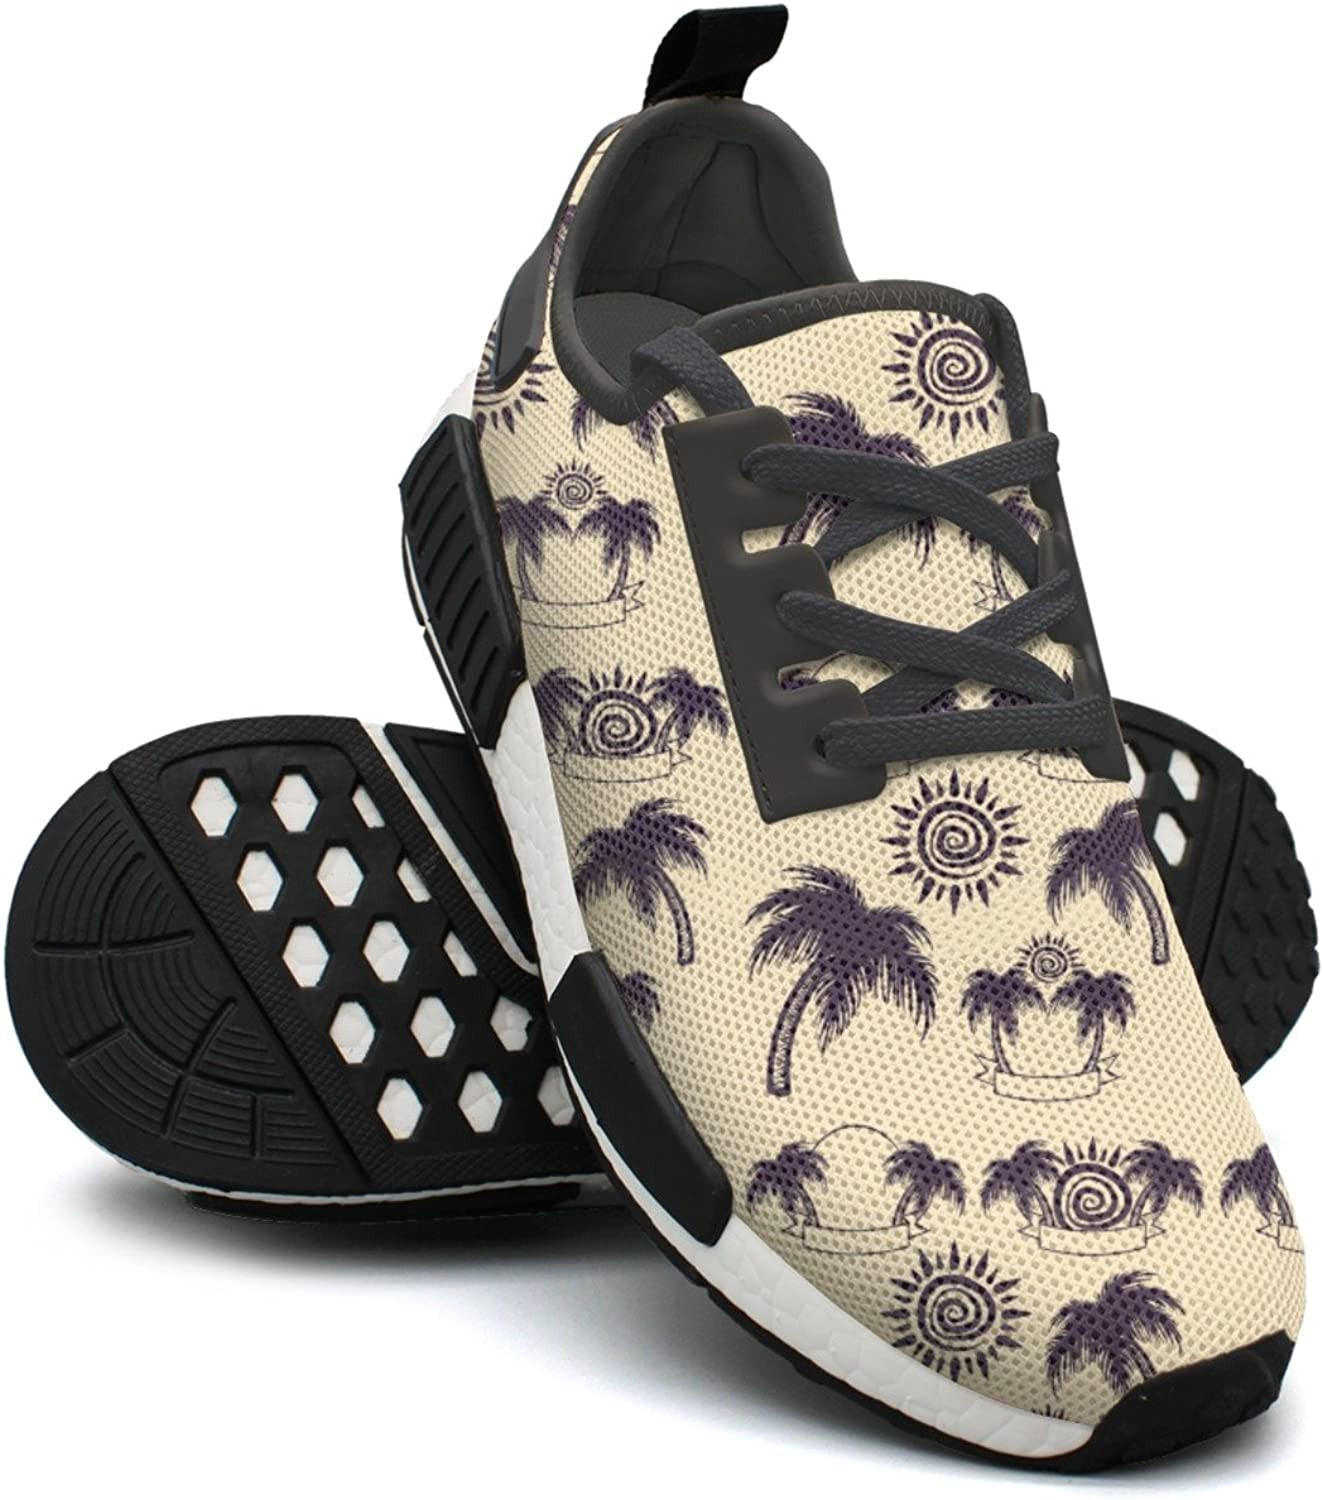 Palm Tree And Sun Ladies Jogging shoes Nmd Best Gym shoes